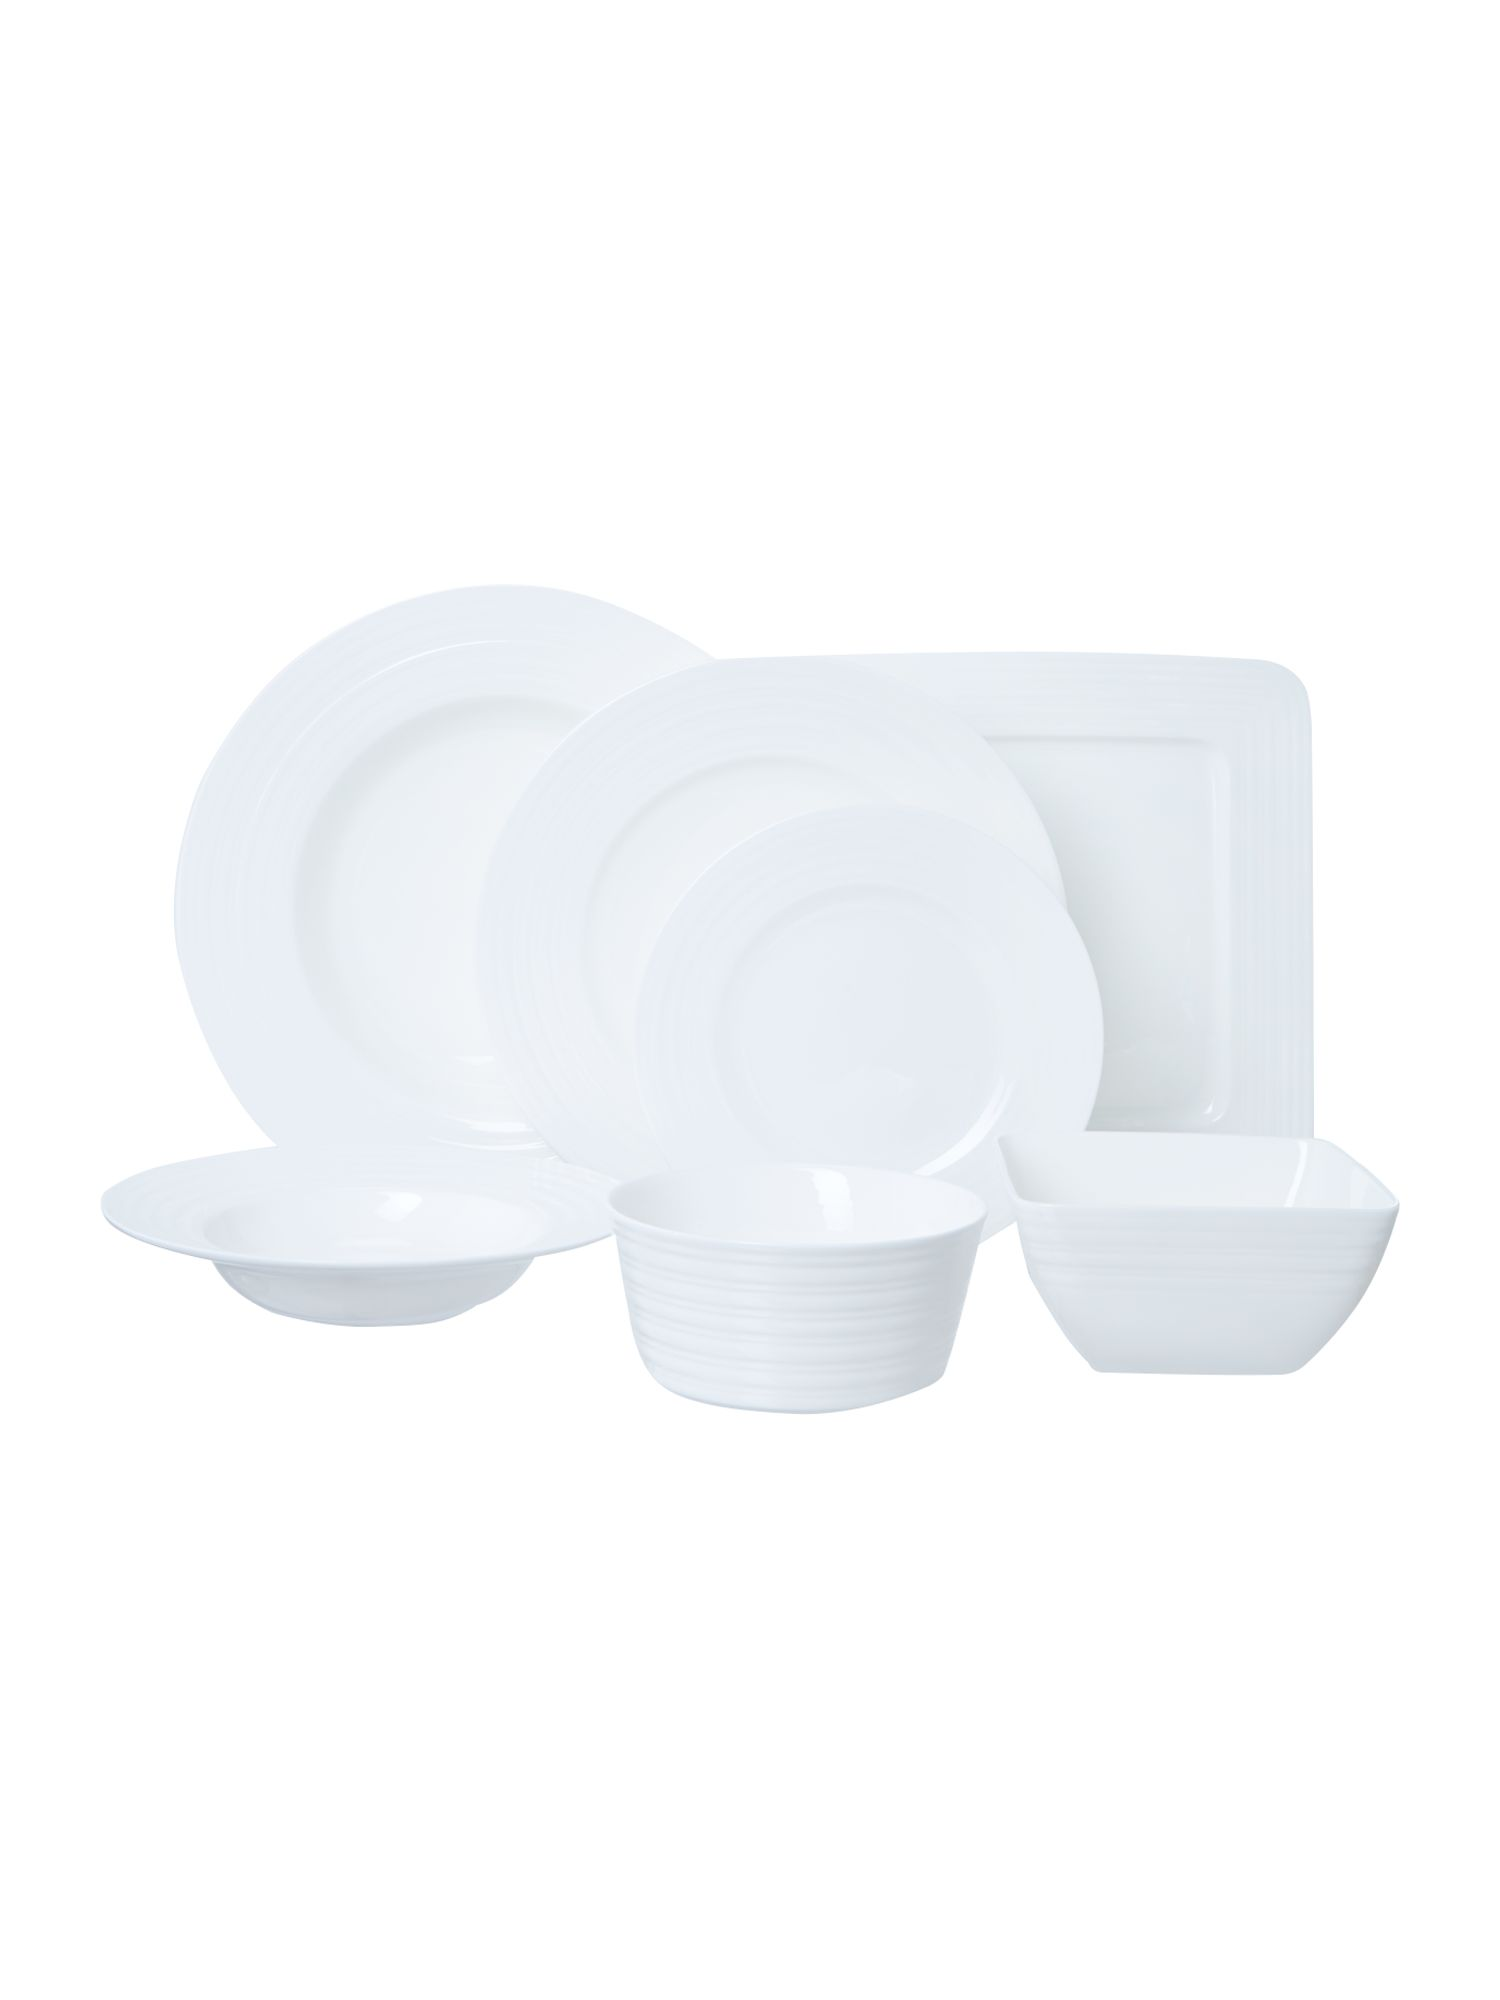 Soho Bone China Dinnerware Range